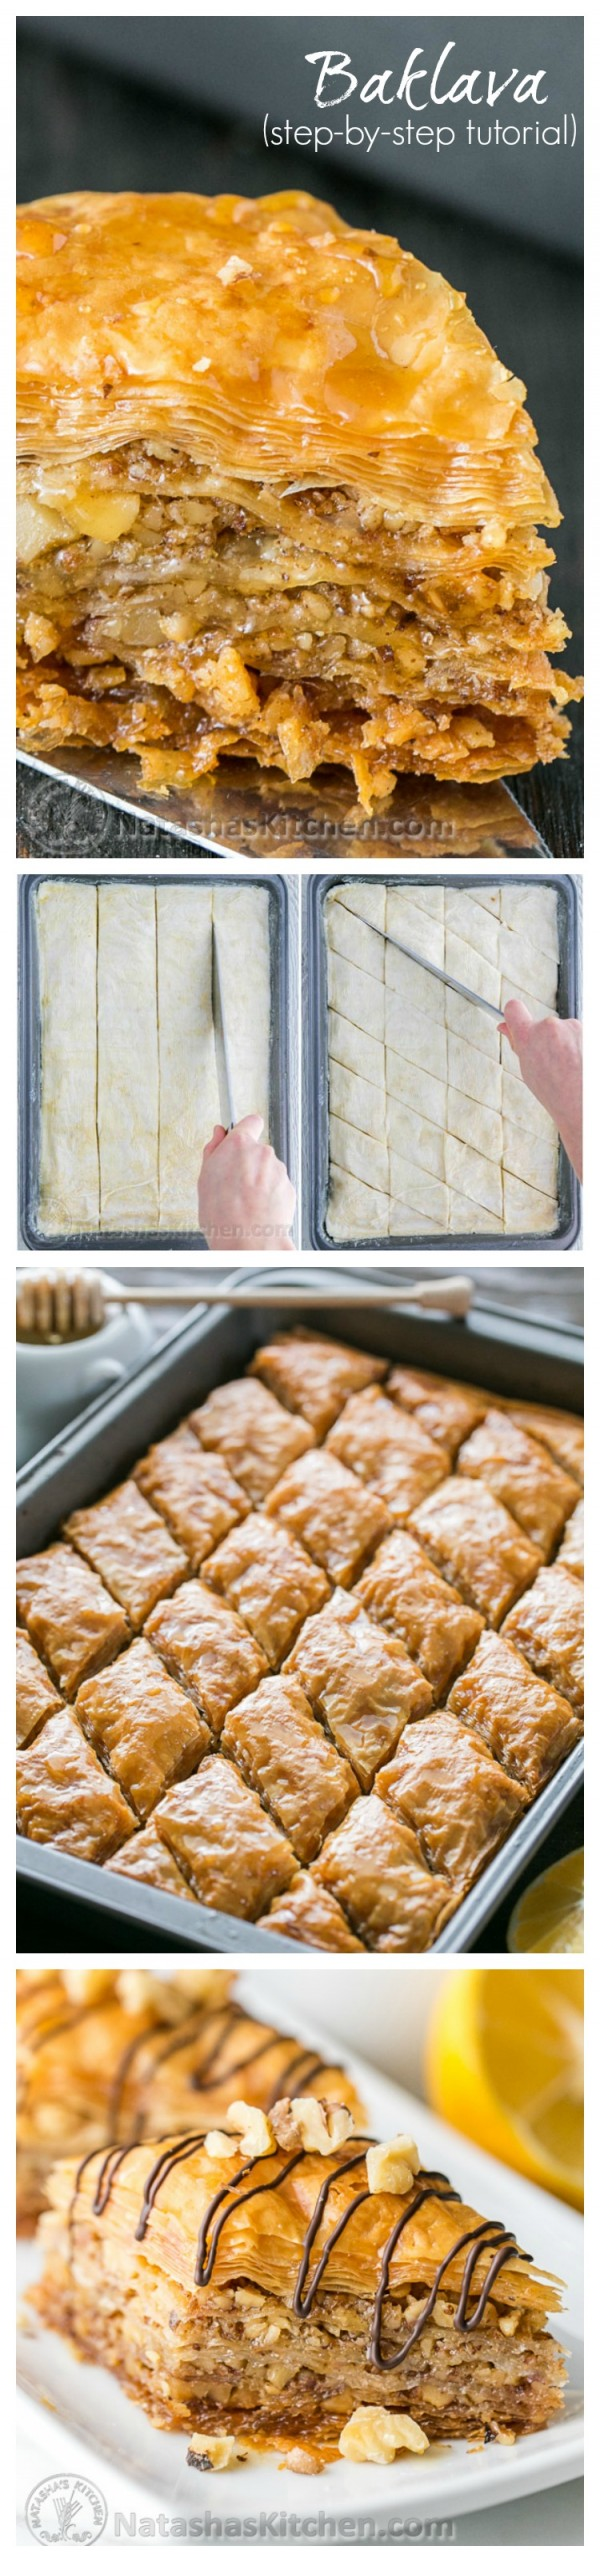 Get the recipe Baklava @recipes_to_go